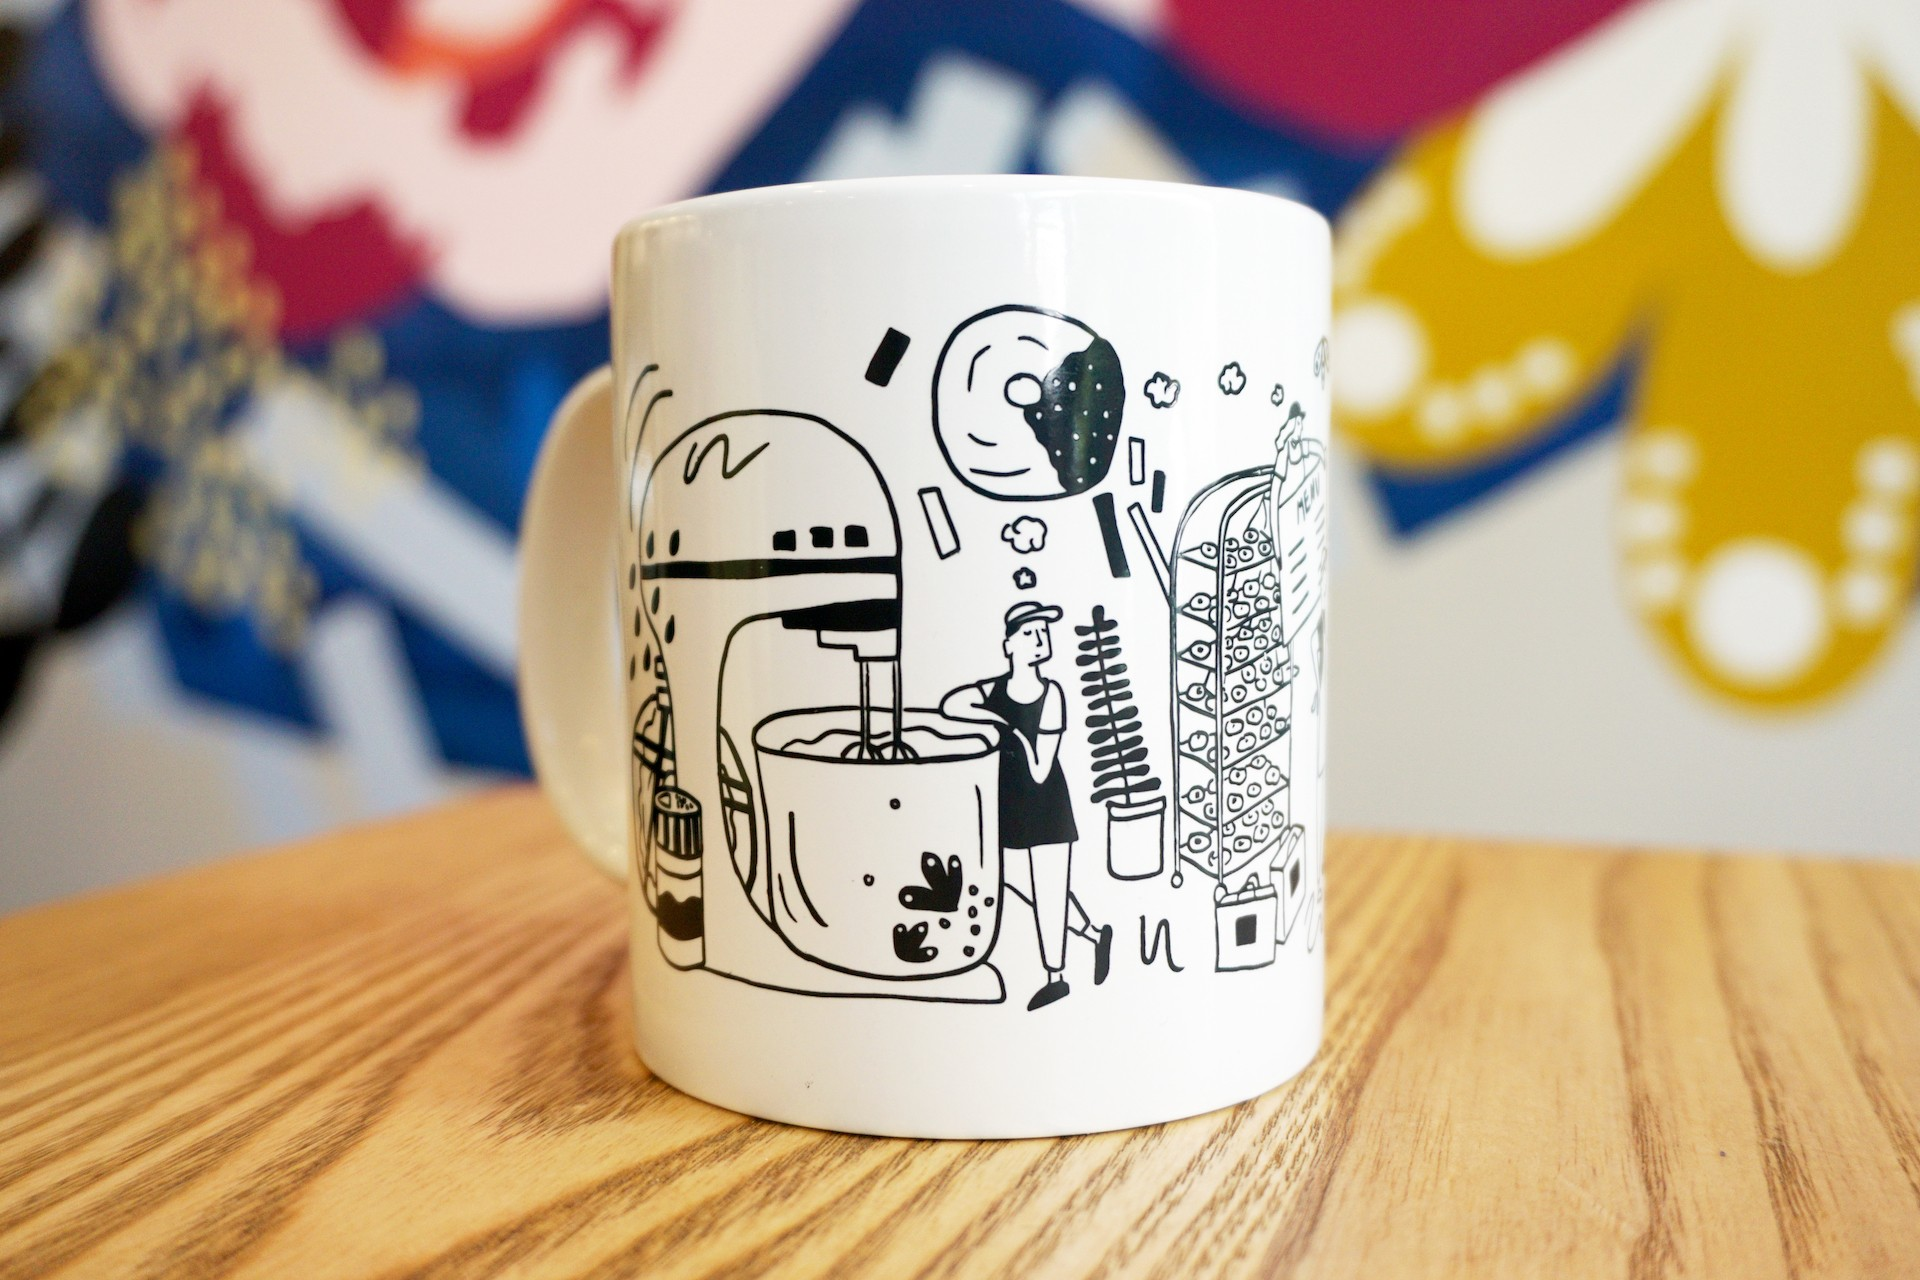 White ceramic mug on wooden table with colorful mural in background. Mug illustration includes oversized kitchen items and bakers.